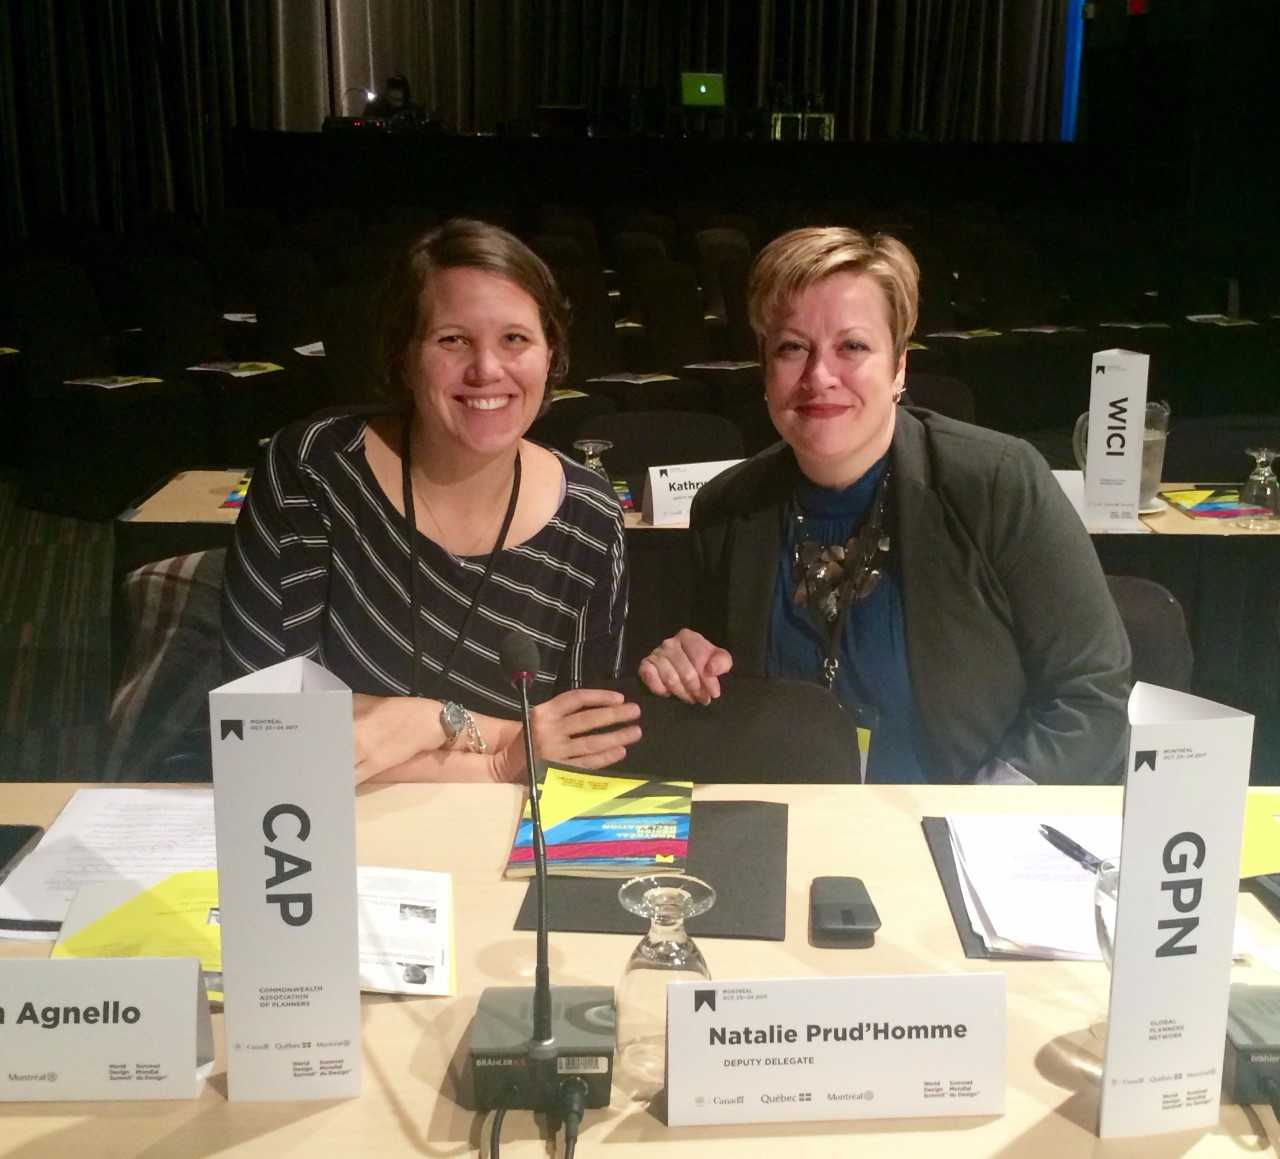 Eleanor Mohammed, right, represented Global Planners Network and Kristin Agnello represented the Commonwealth Association of Planners at the 2017 World Design Summit.